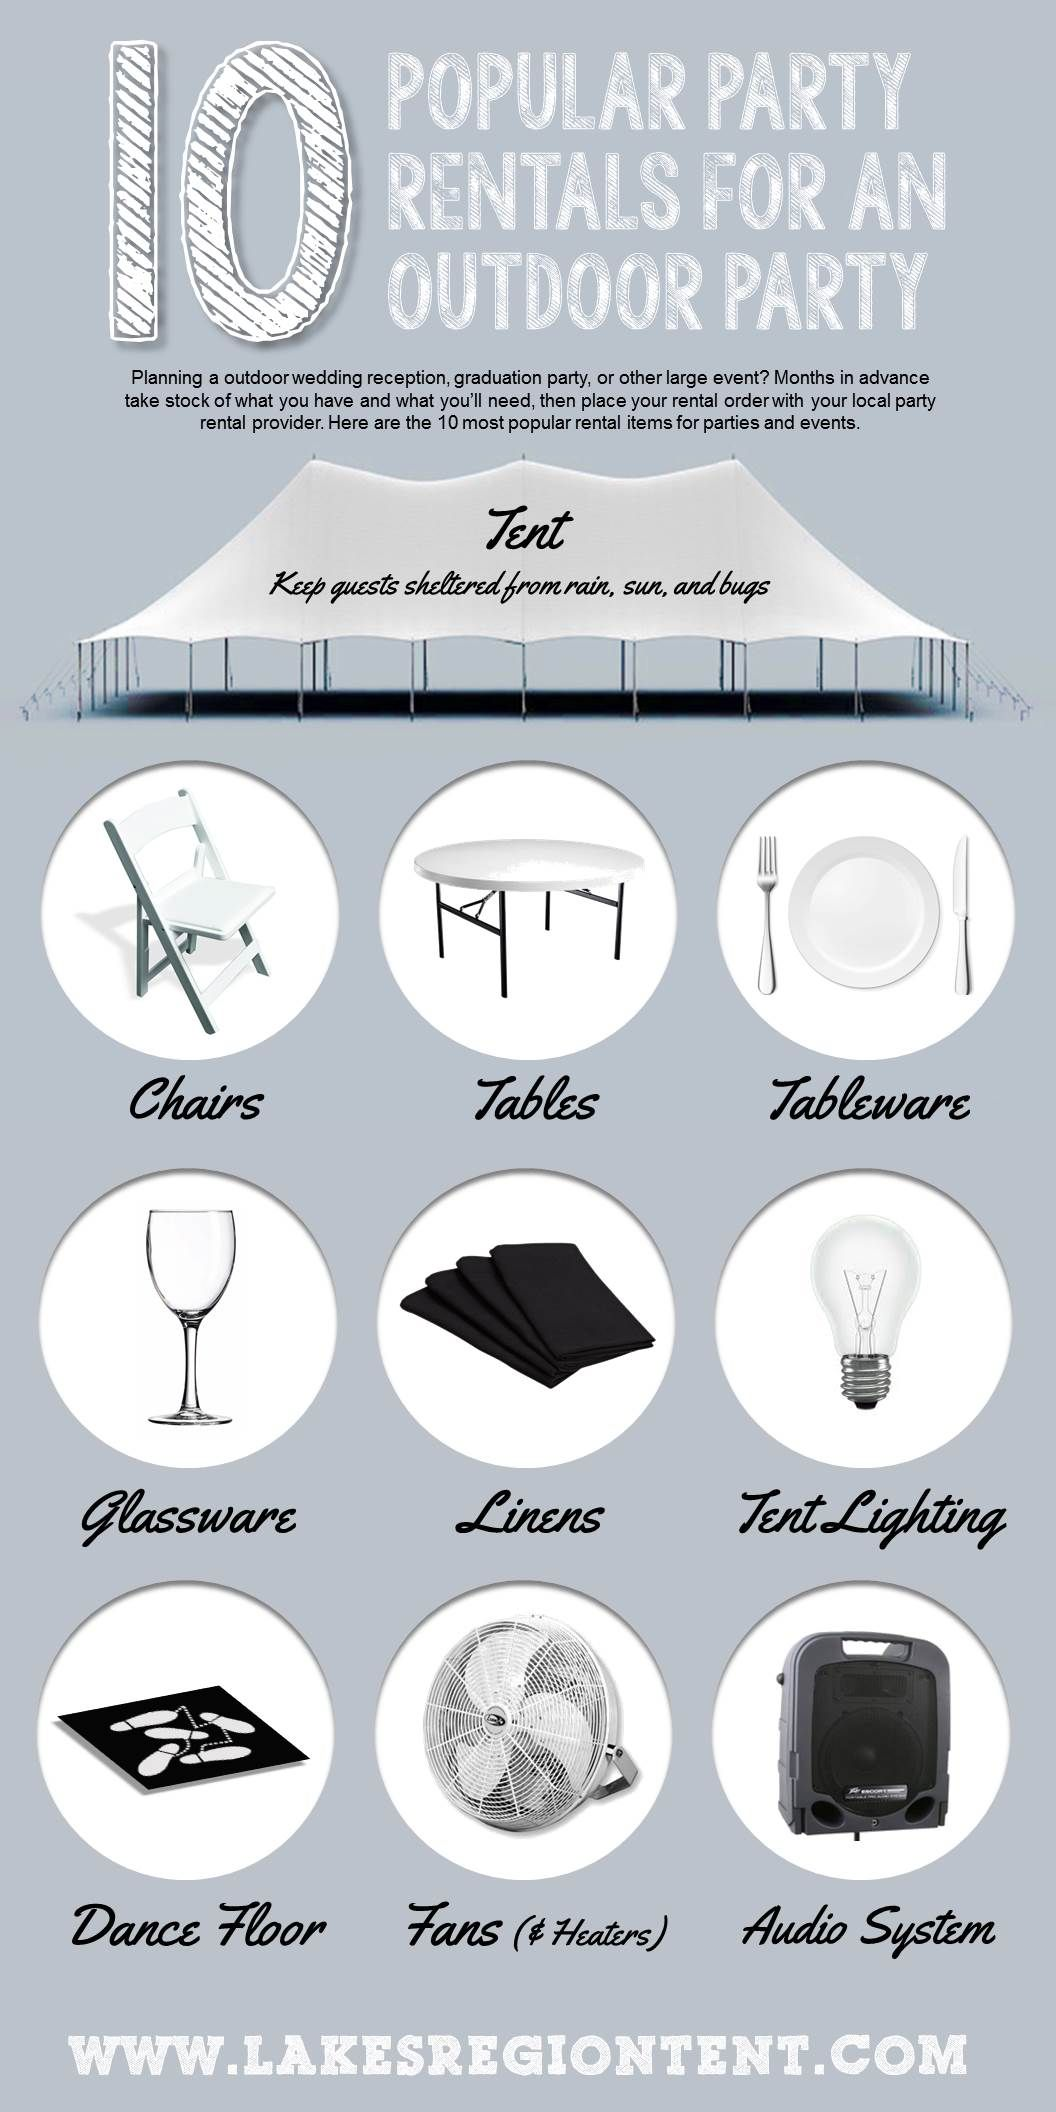 10 most popular party rental items for outdoor parties - do you have